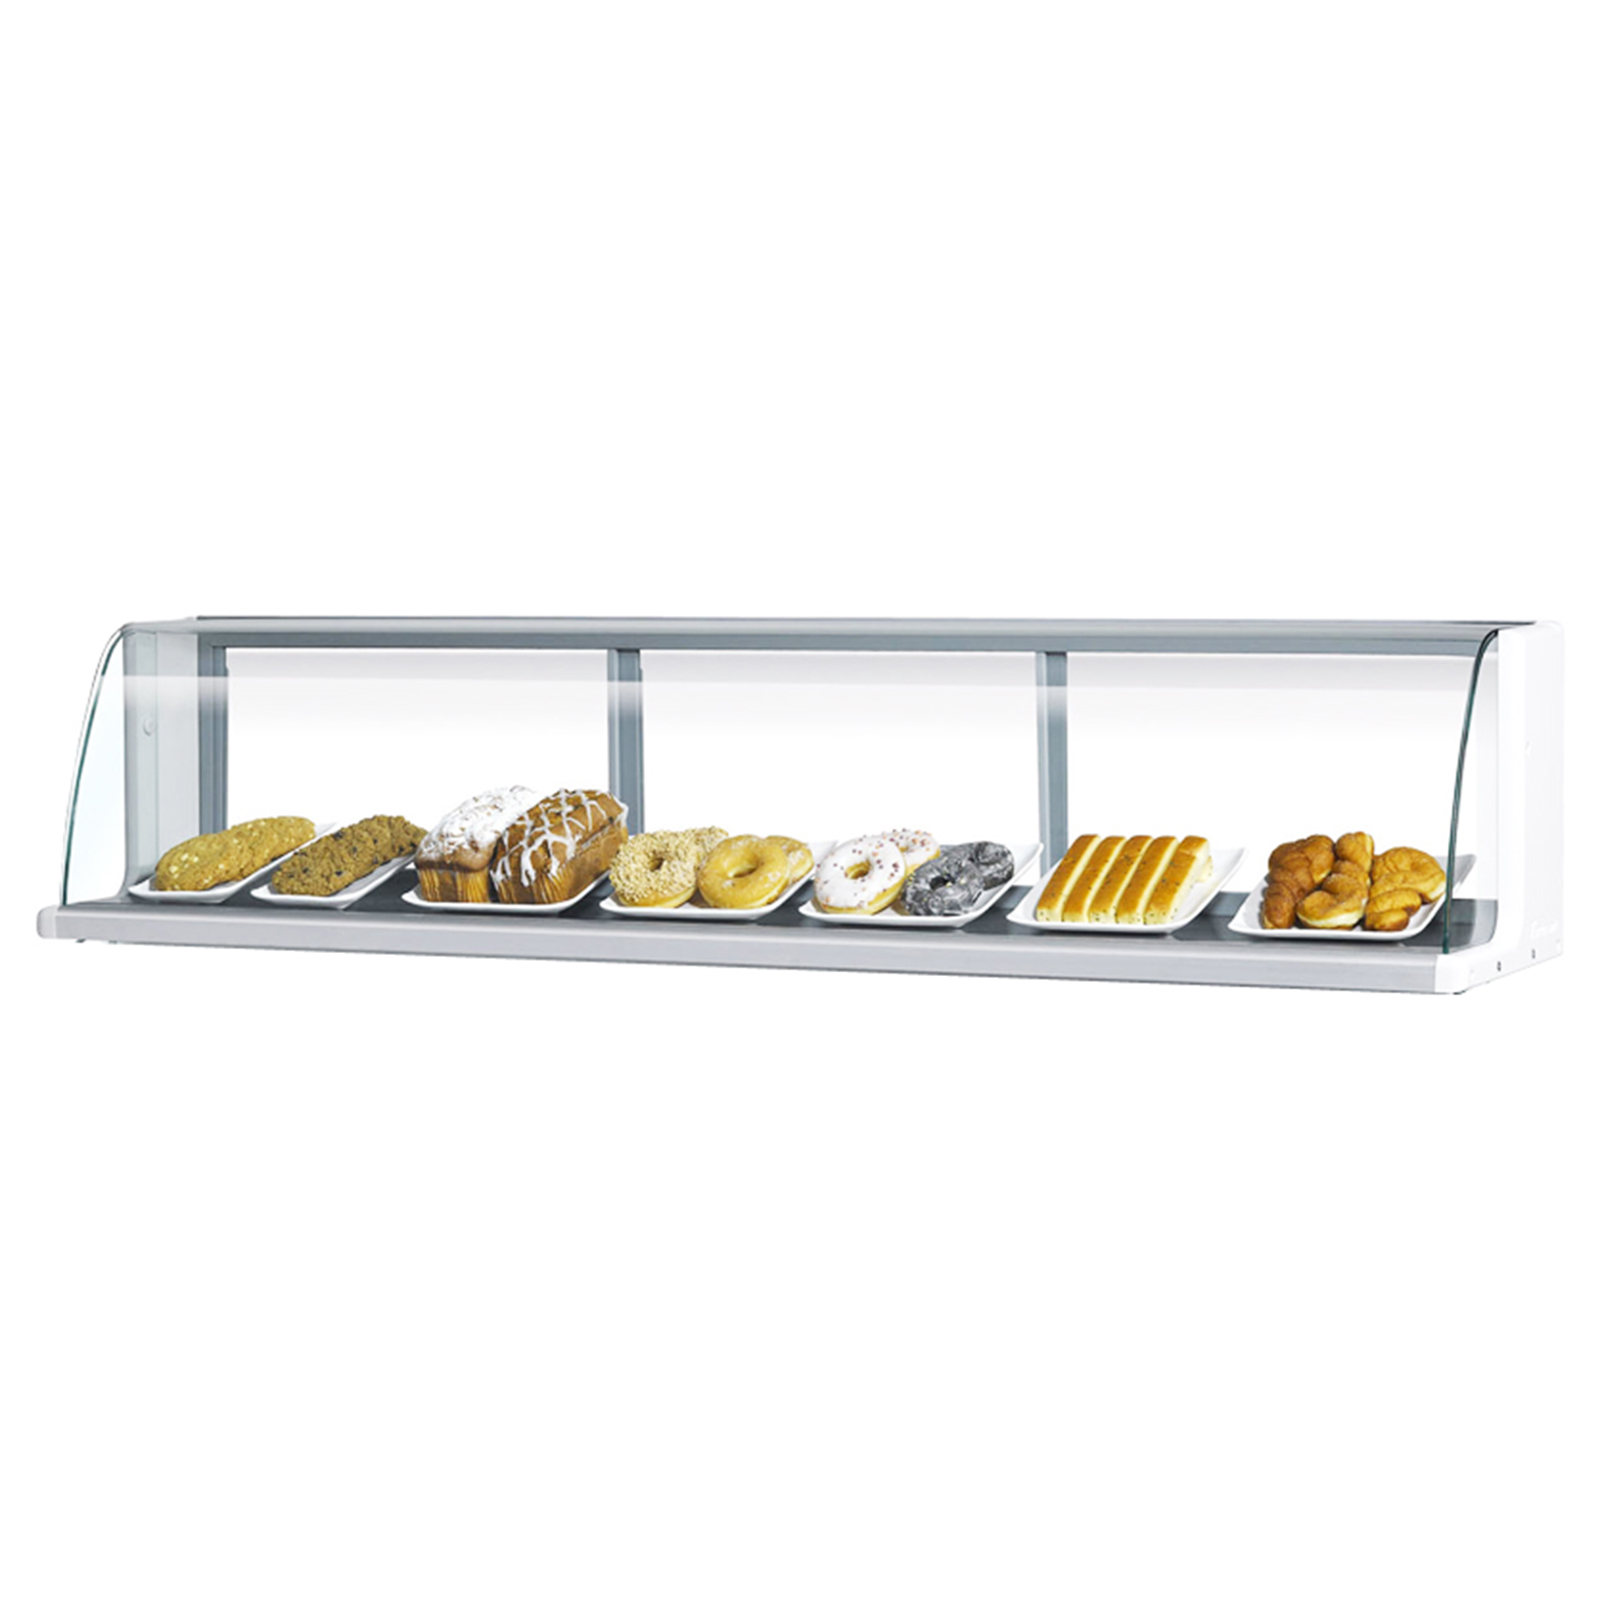 Turbo Air TOMD-75LB display case, non-refrigerated countertop